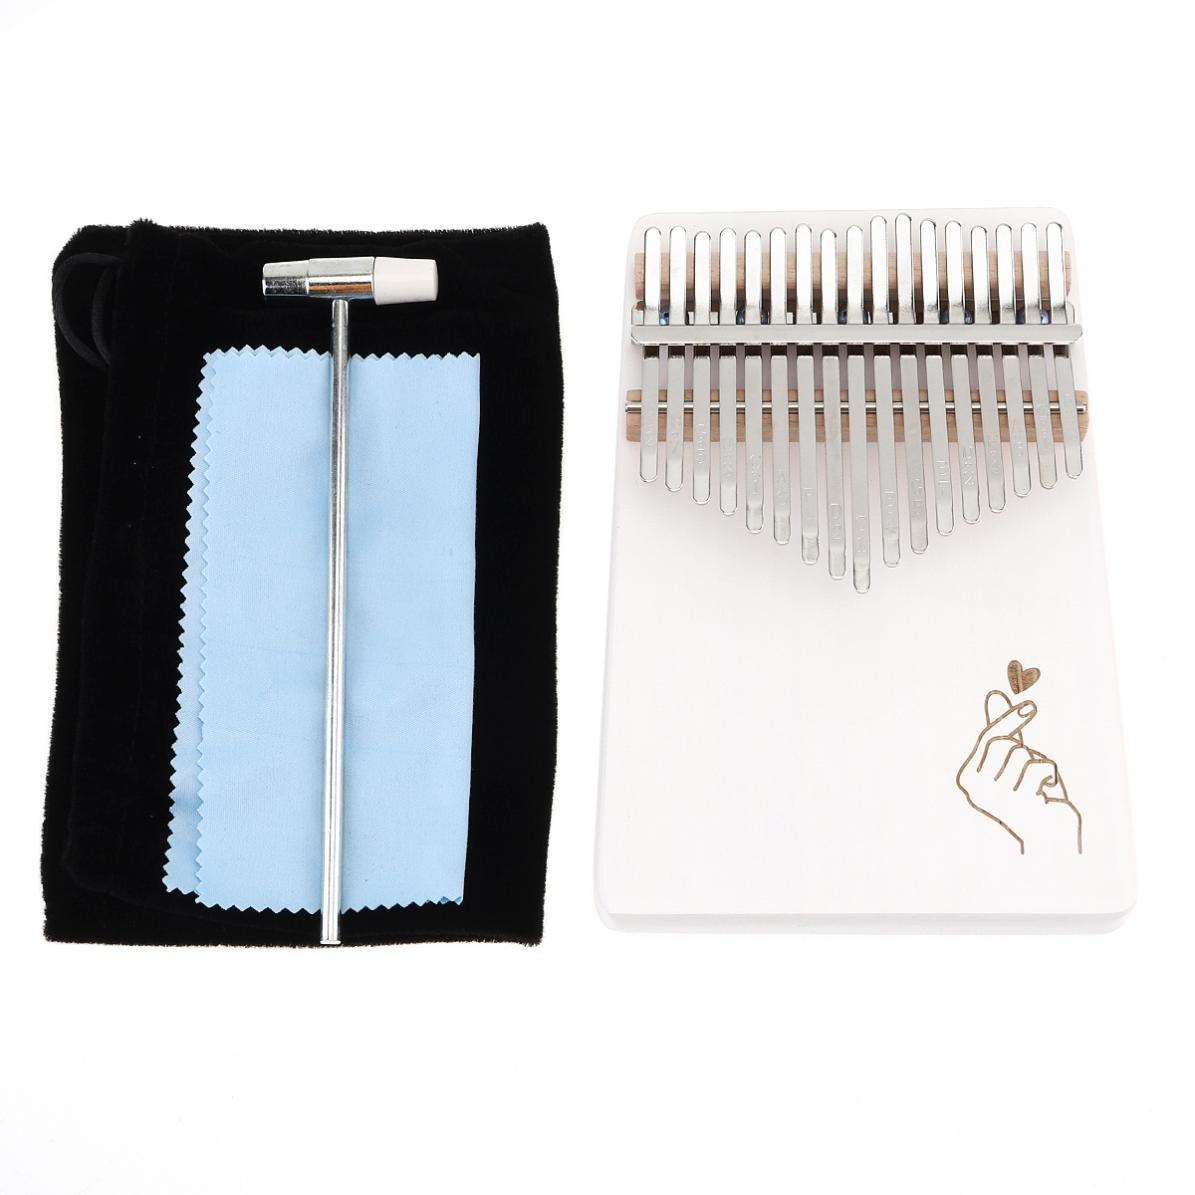 17-Key-Kalimba-Thumb-Piano-Solid-Finger-Piano-Single-Board-Pine-Mbira-Keyboard thumbnail 11